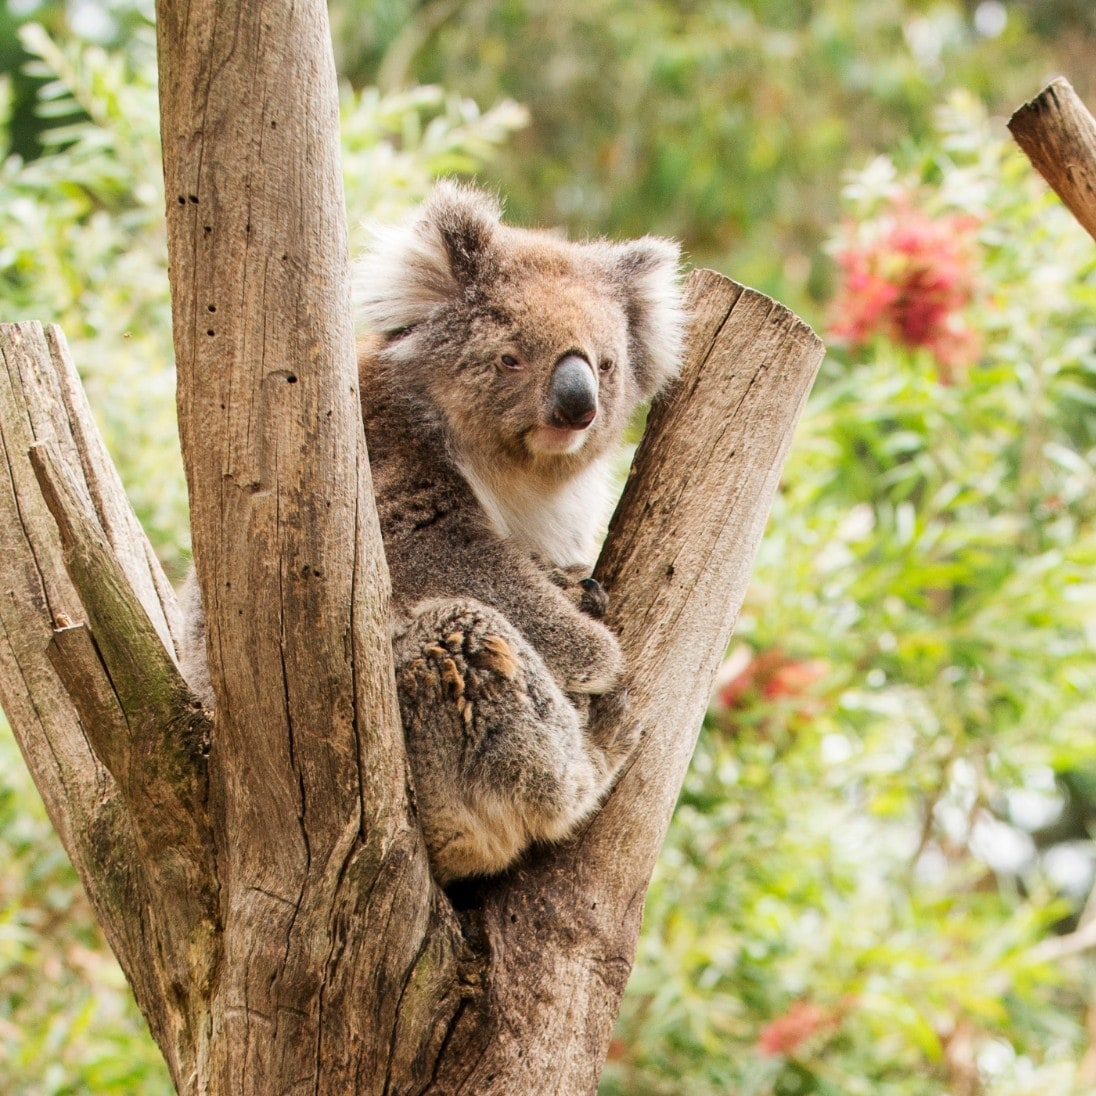 Koala sits in tree branches at Kangaroo Island Wildlife Park © Julie Fletcher